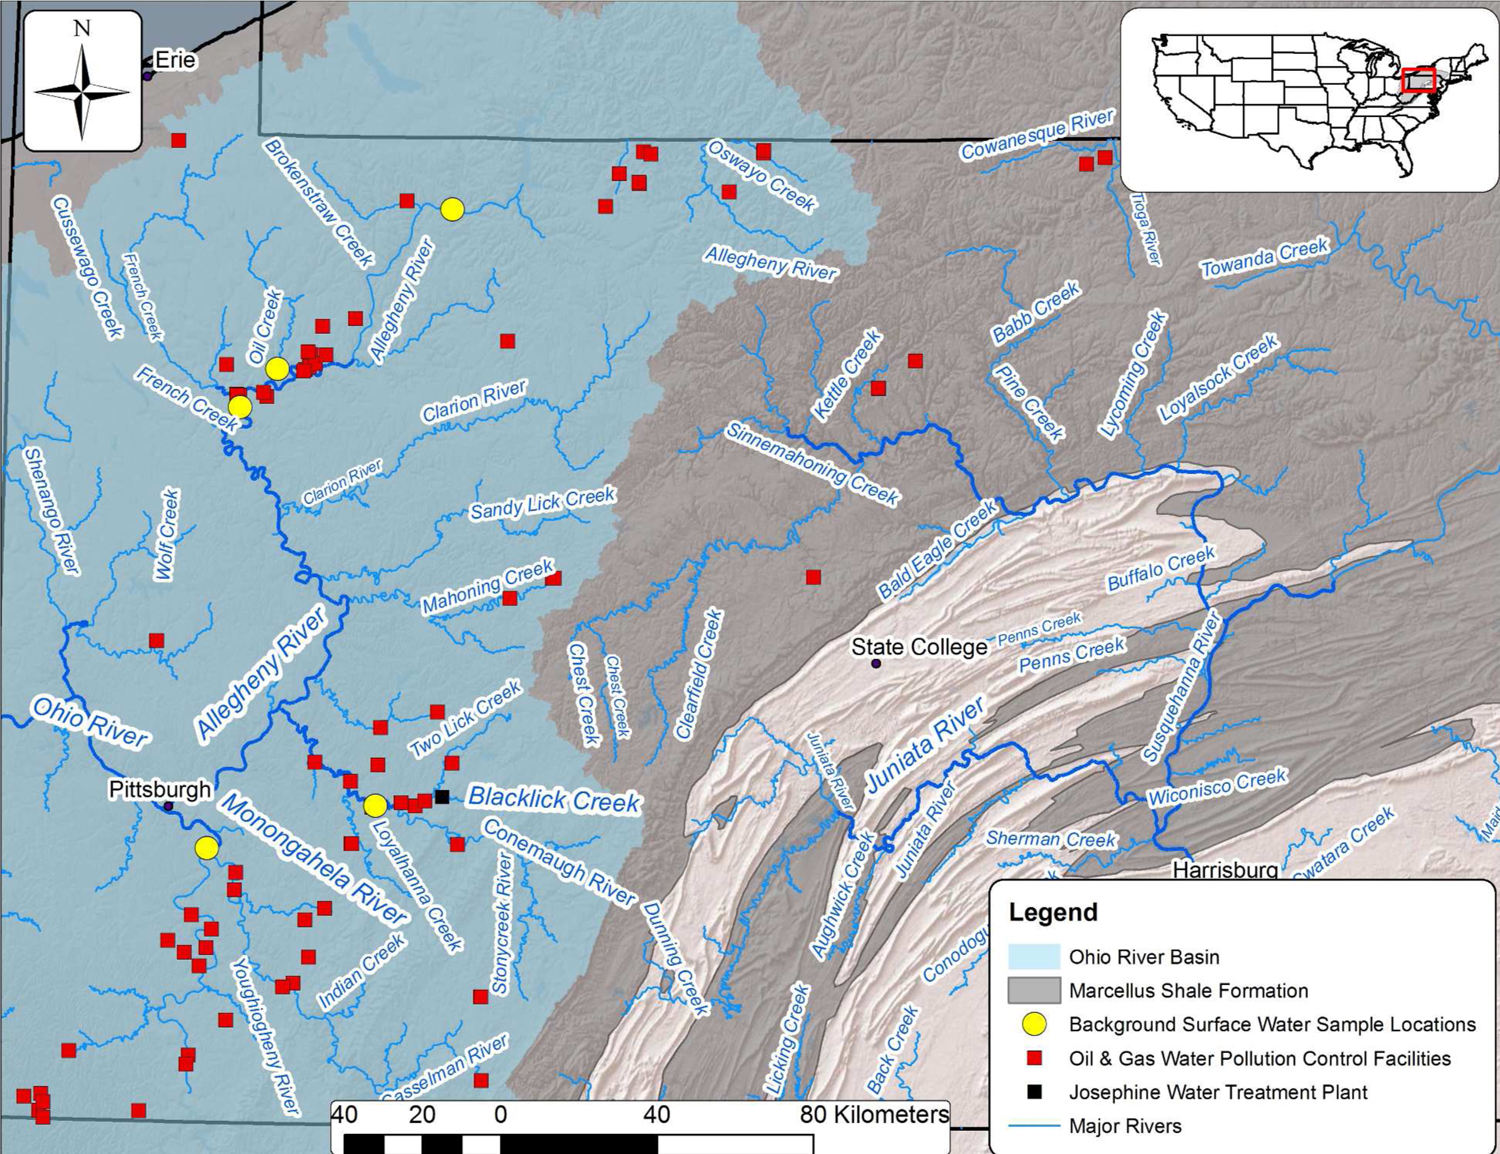 Fracking linked to radioactive river water in Pennsylvania